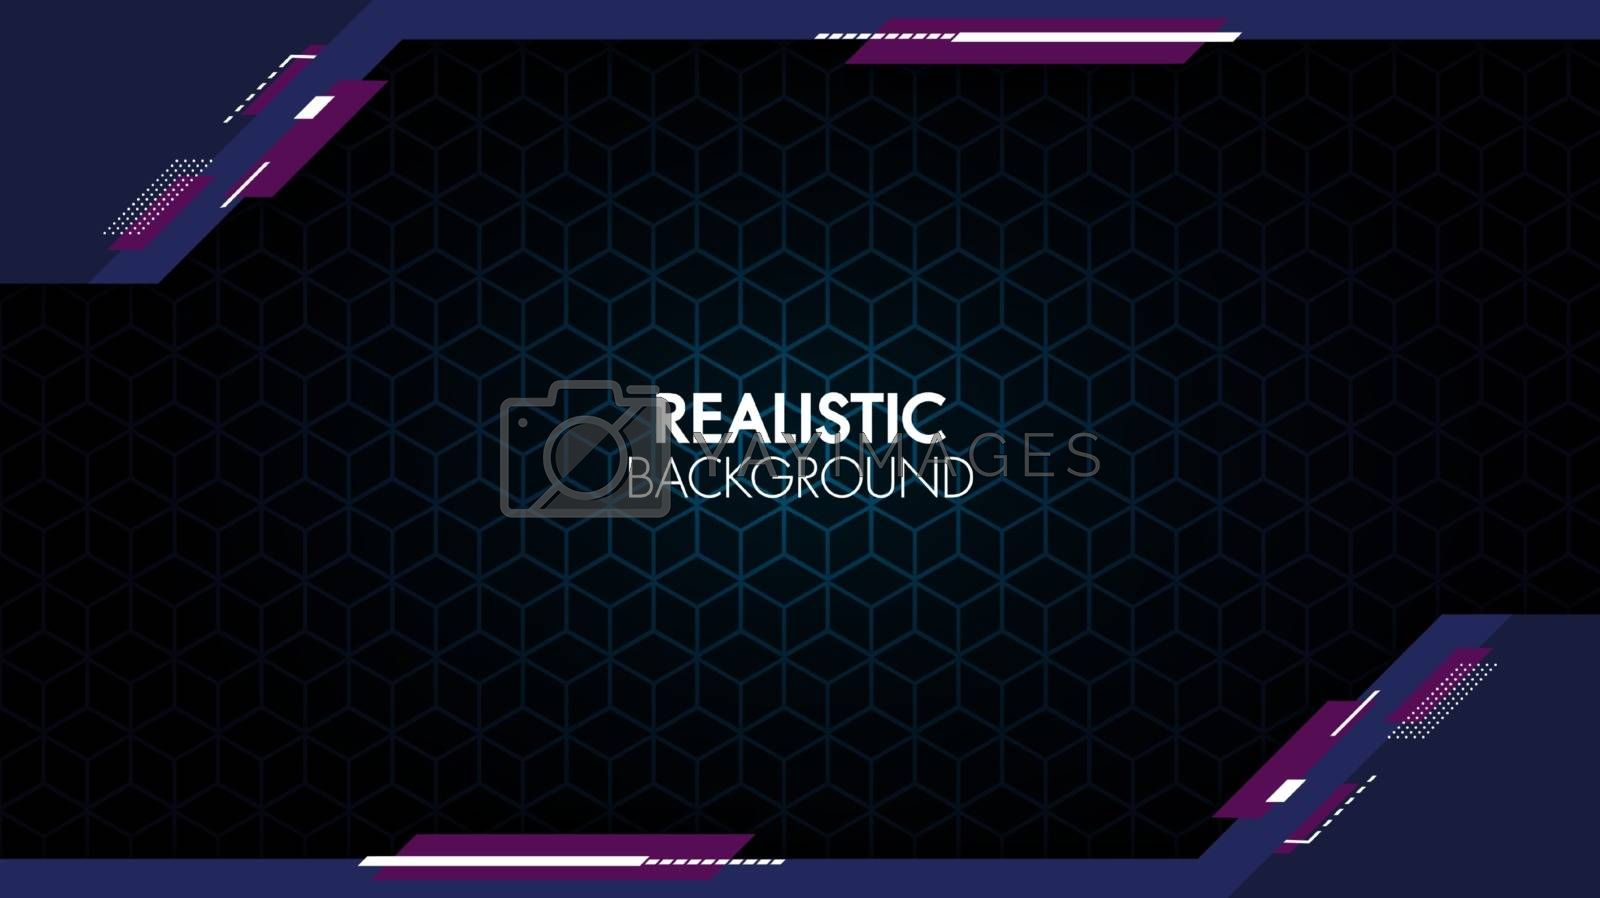 Abstract background gradient design with geometric composition.Futuristic minimal pattern place for text or message.Trendy and modern Cool banner design template.